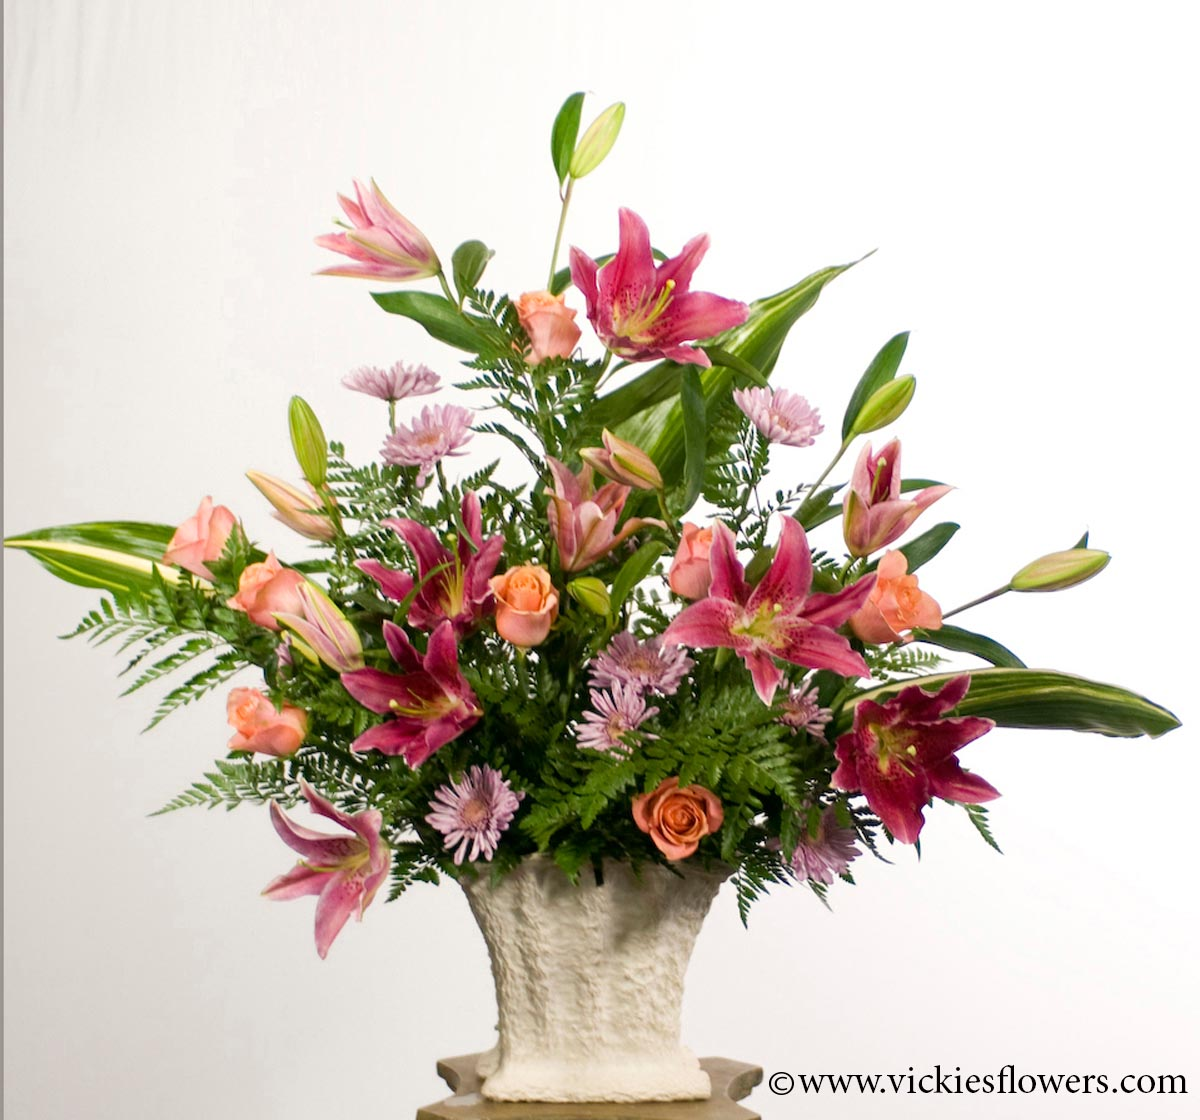 Sympathy flowers and plants vickies flowers brighton co florist funeral sympathy flowers 007 150 plus tax and delivery beautiful asiatic lily arrangement with peach roses lavender daisy mums aspidistra izmirmasajfo